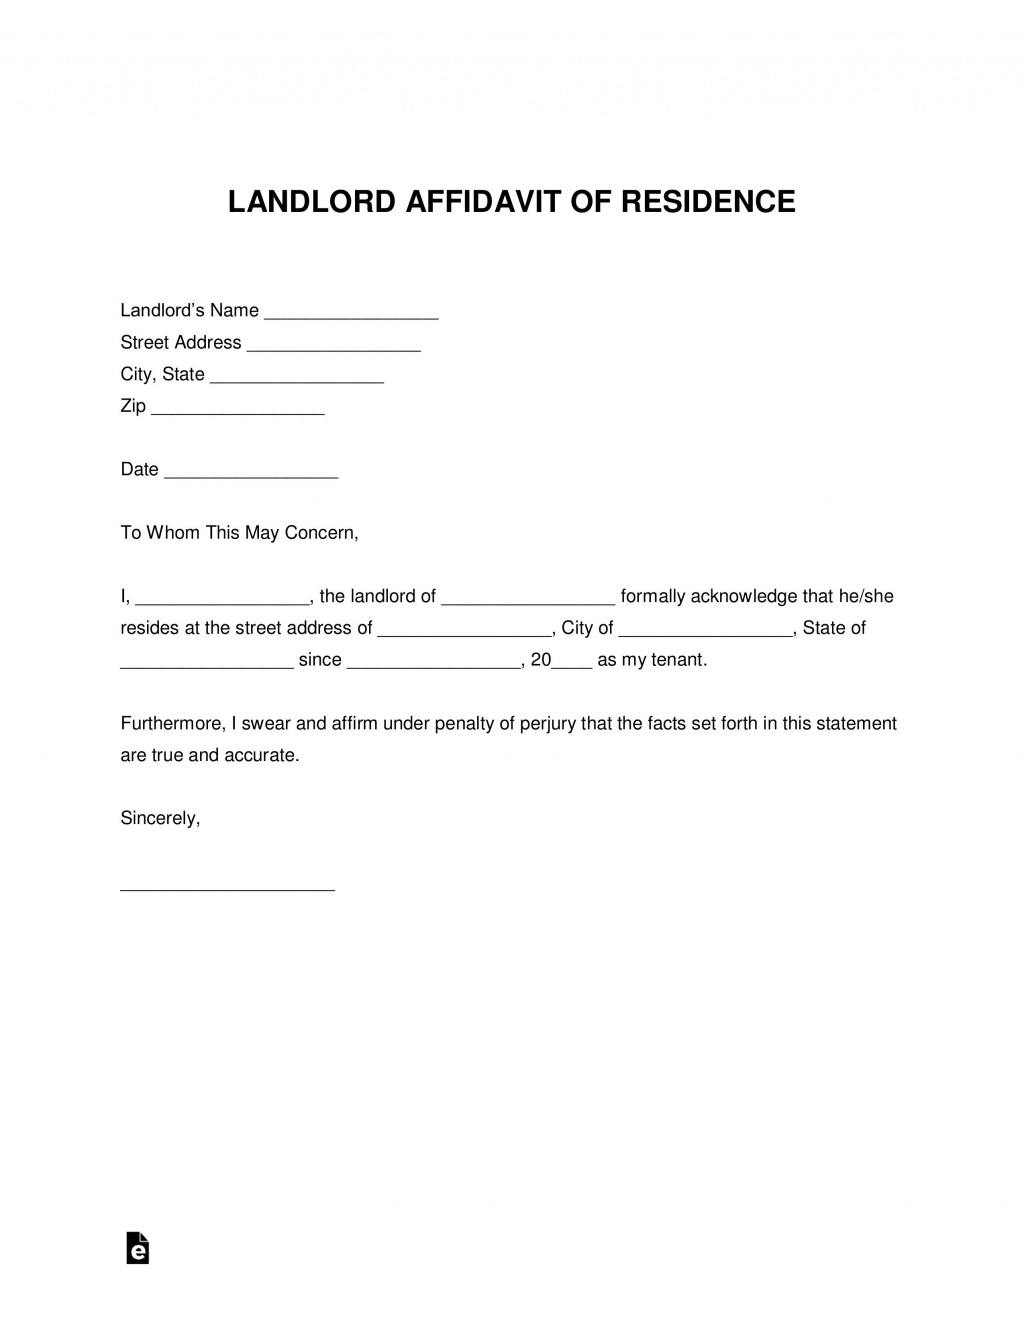 002 Astounding Proof Of Residency Letter Template High Resolution  Pdf From Landlord Family Member South AfricaLarge